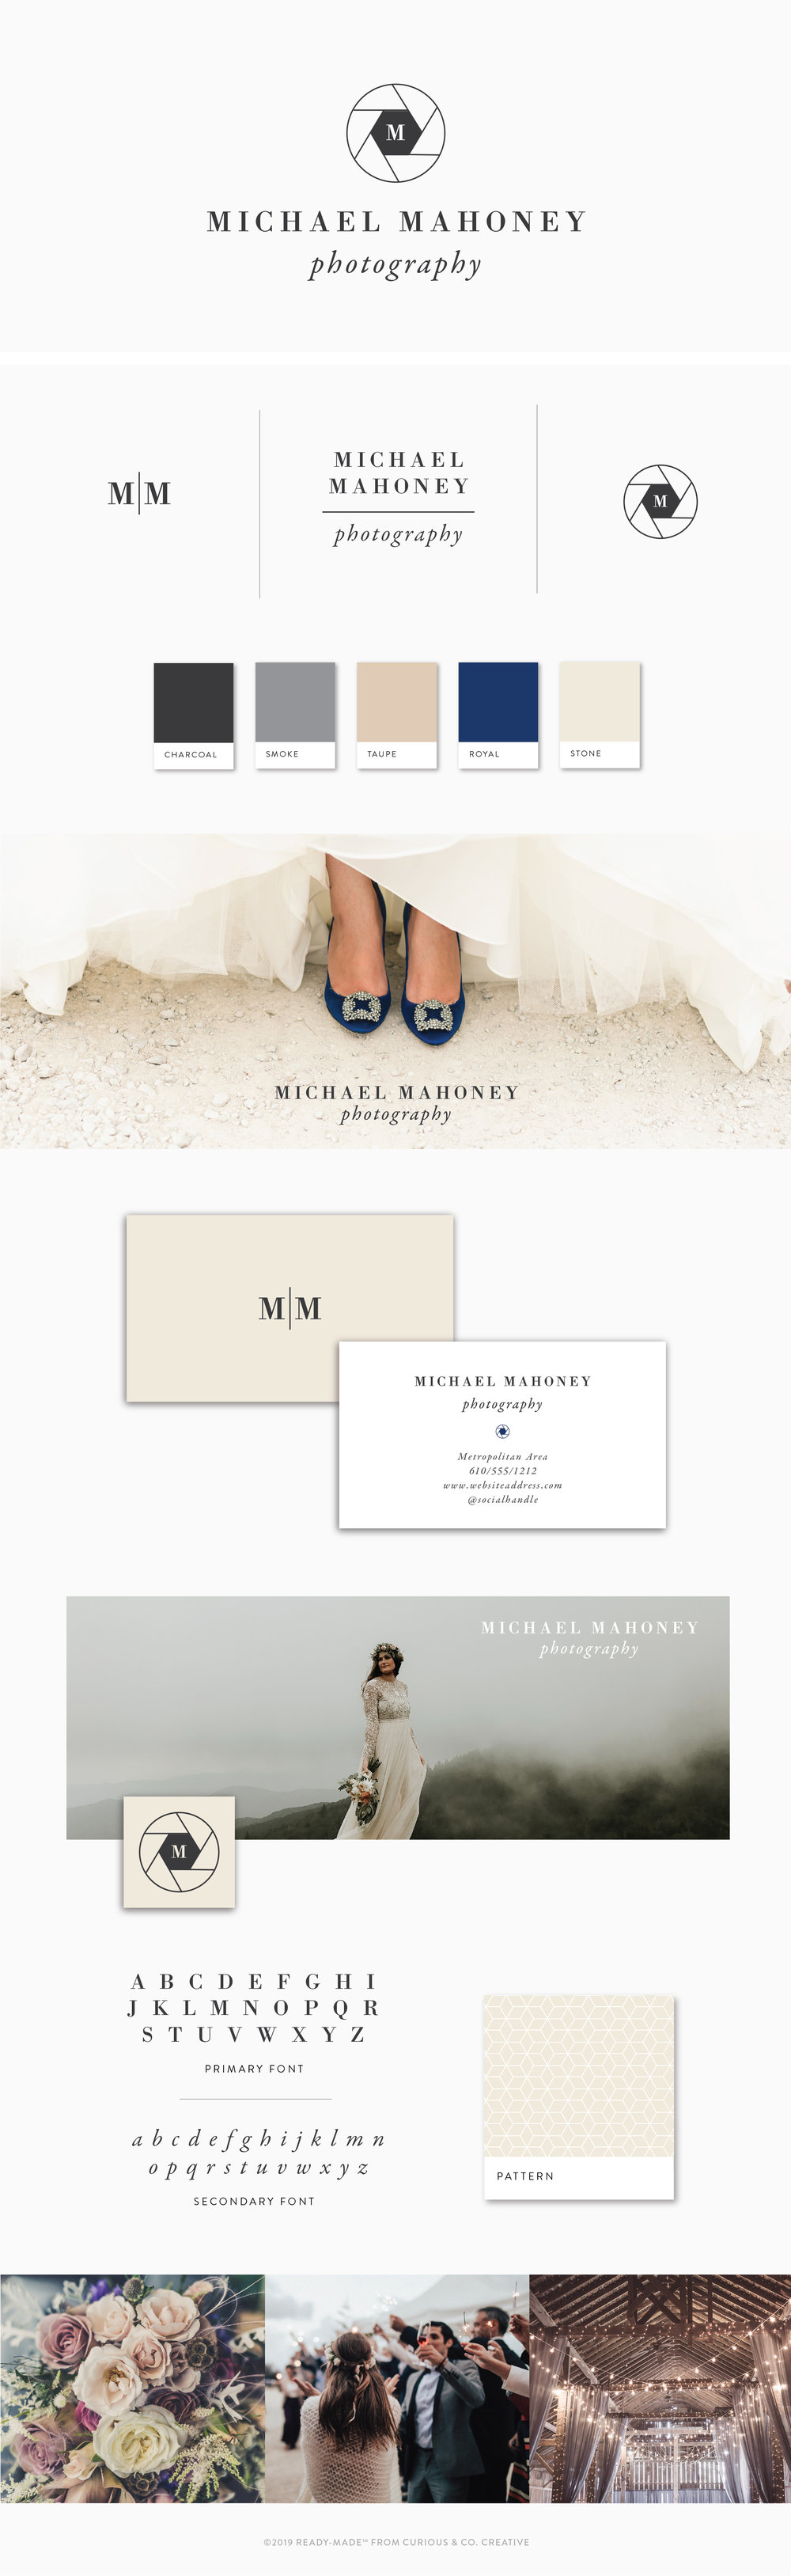 Brand Board Mahoney | Ready-Made from Curious & Co. Creative